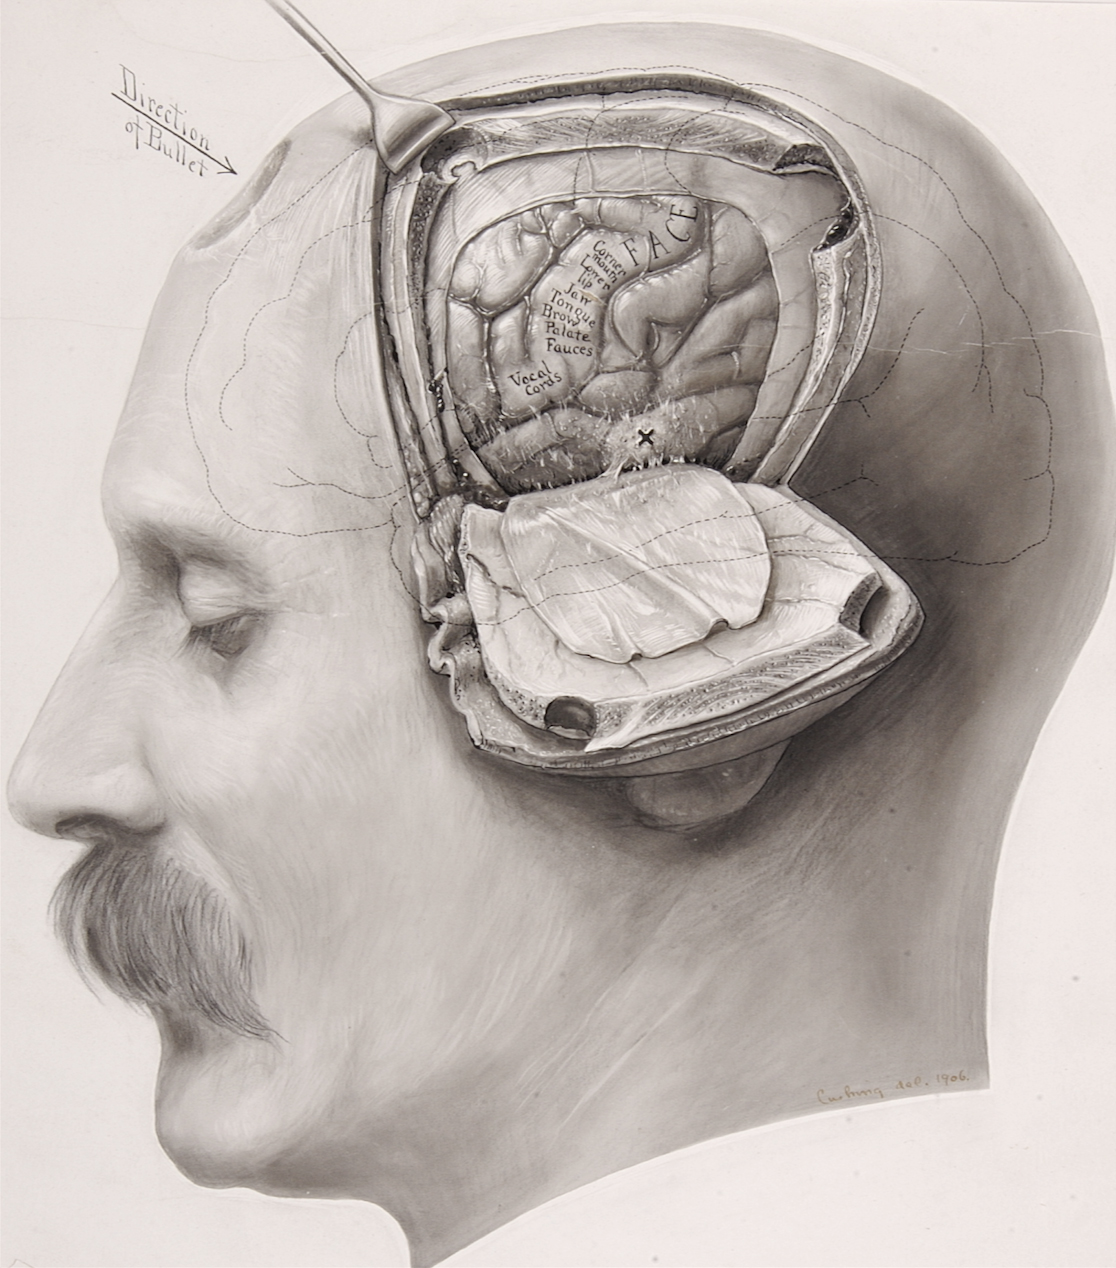 Figure 1: Harvey Cushing illustrated an osteoplastic craniotomy and cortical mapping in a patient who suffered from a gunshot wound (illustration courtesy of the Cushing Brain Tumor Registry at Yale University).